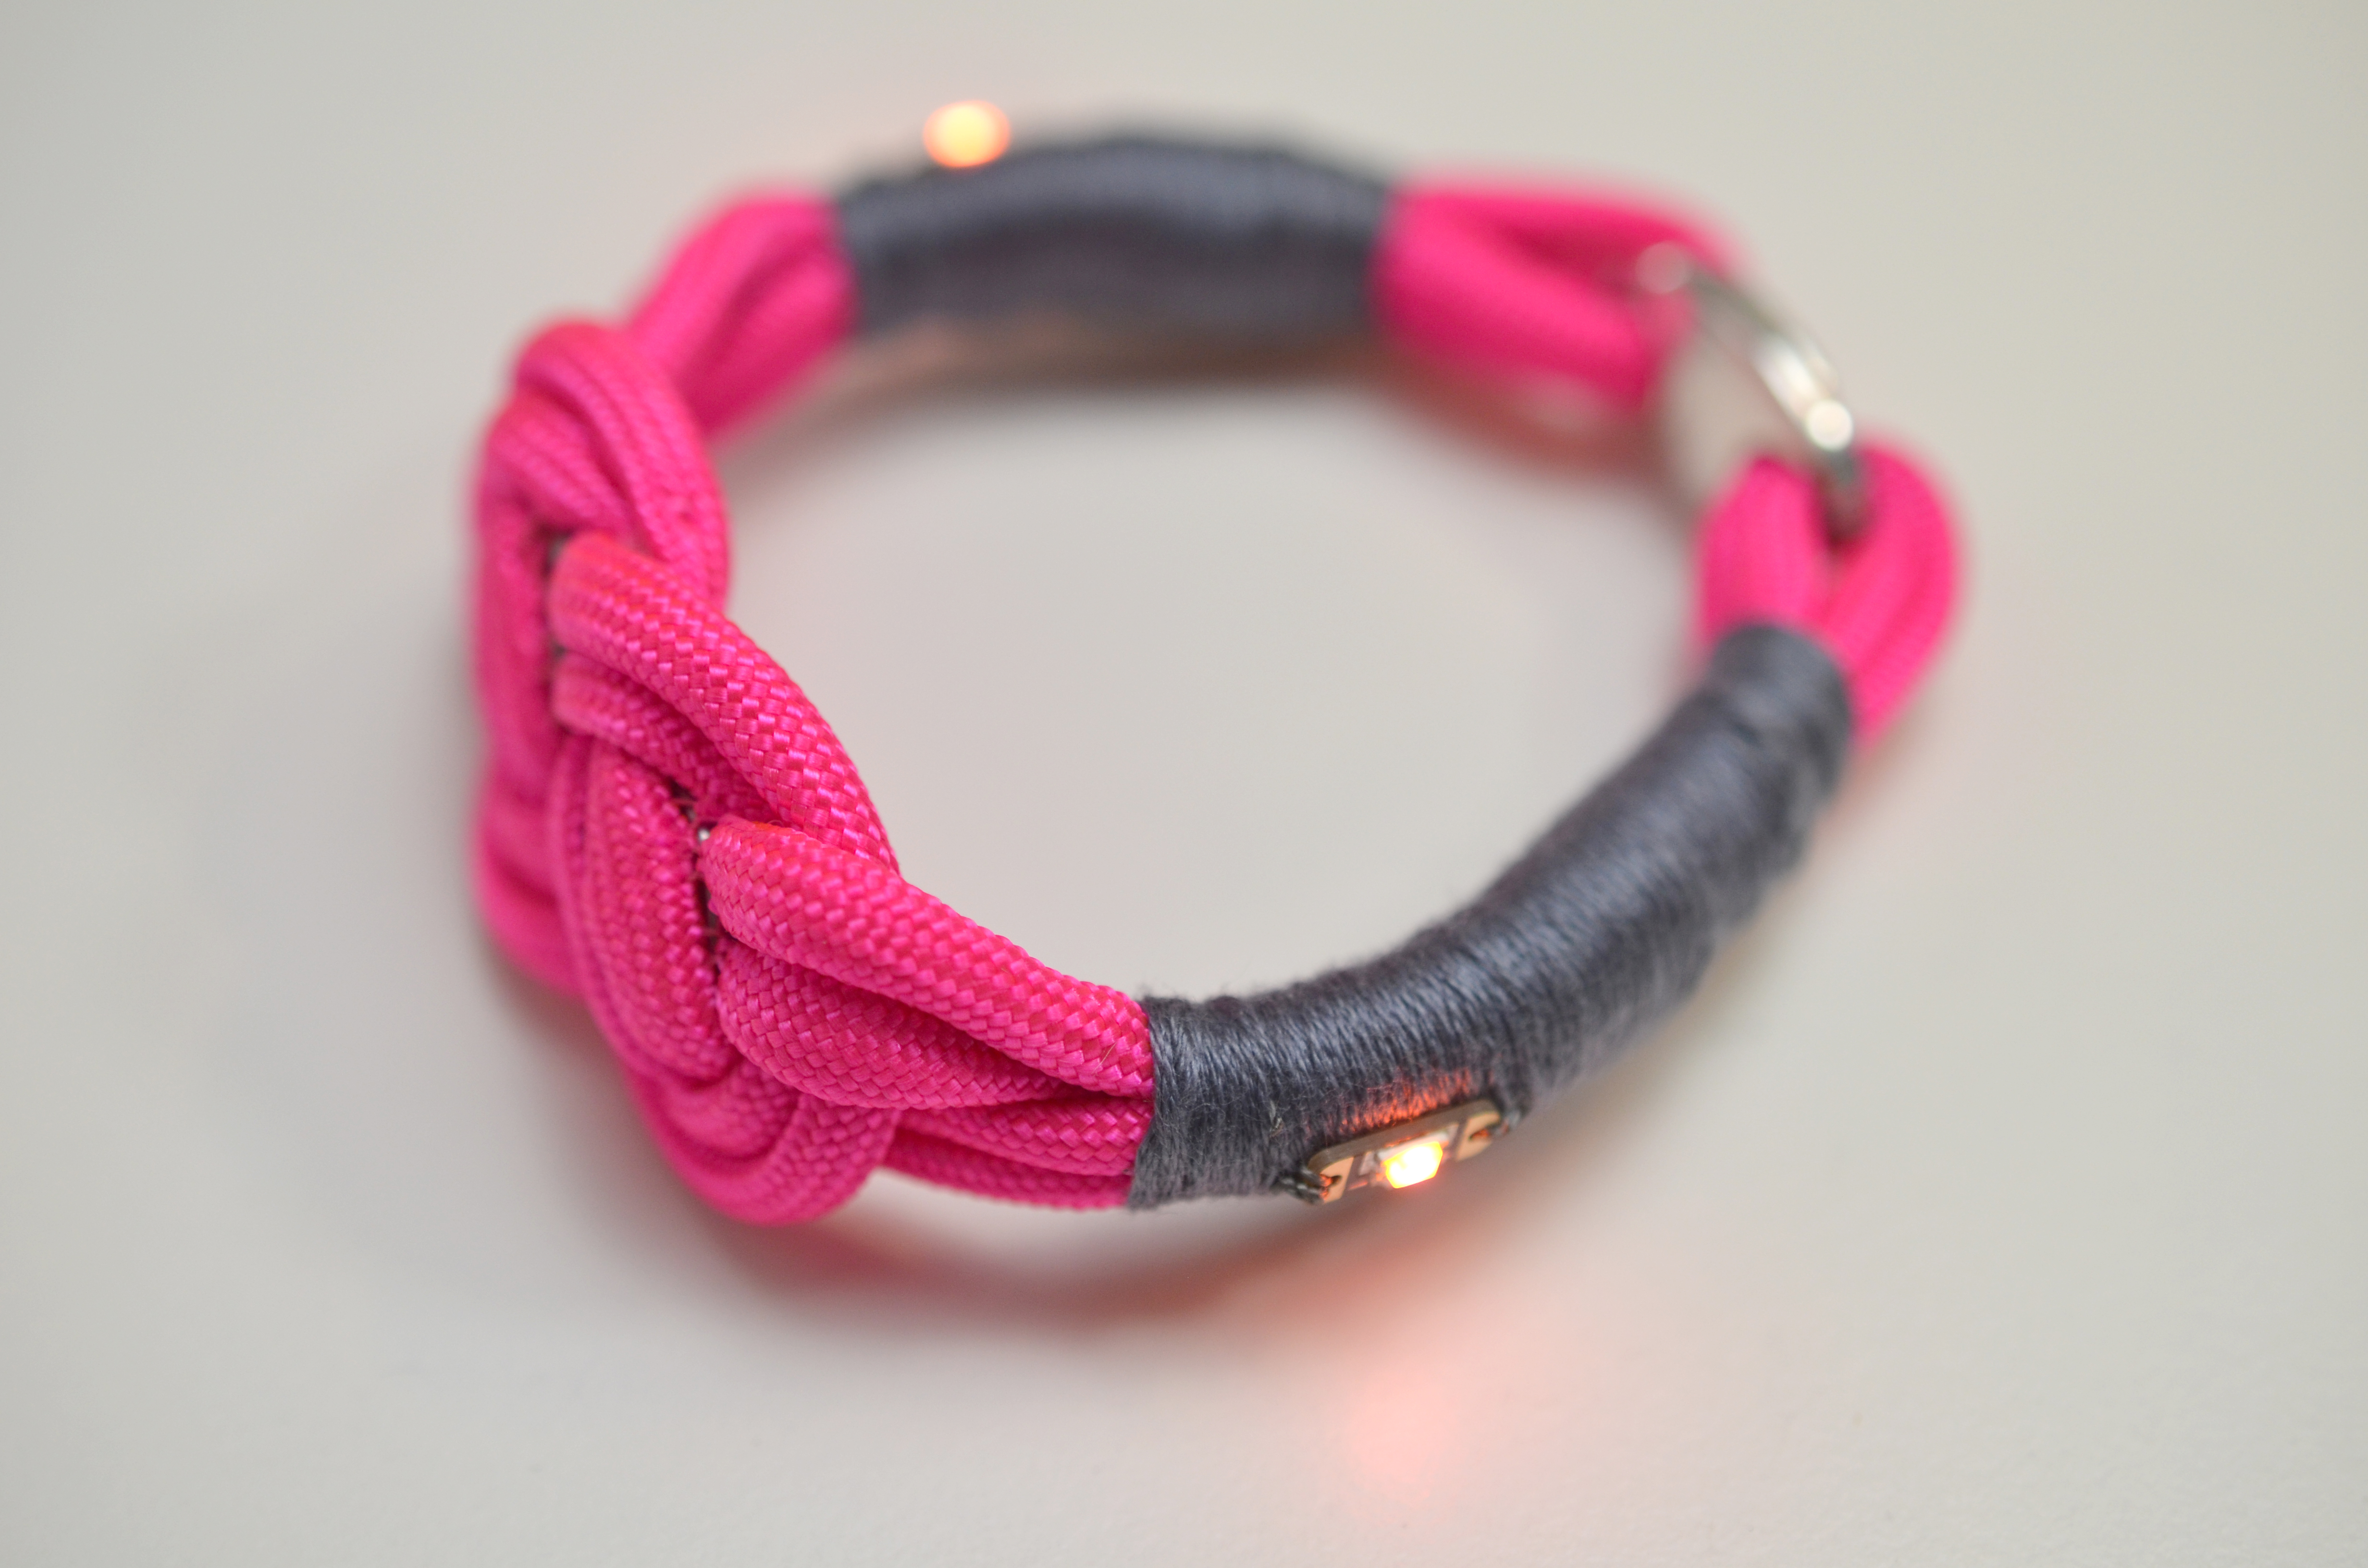 leds_nautical-paracord-led-sequin-friendship-bracelet-62.jpg